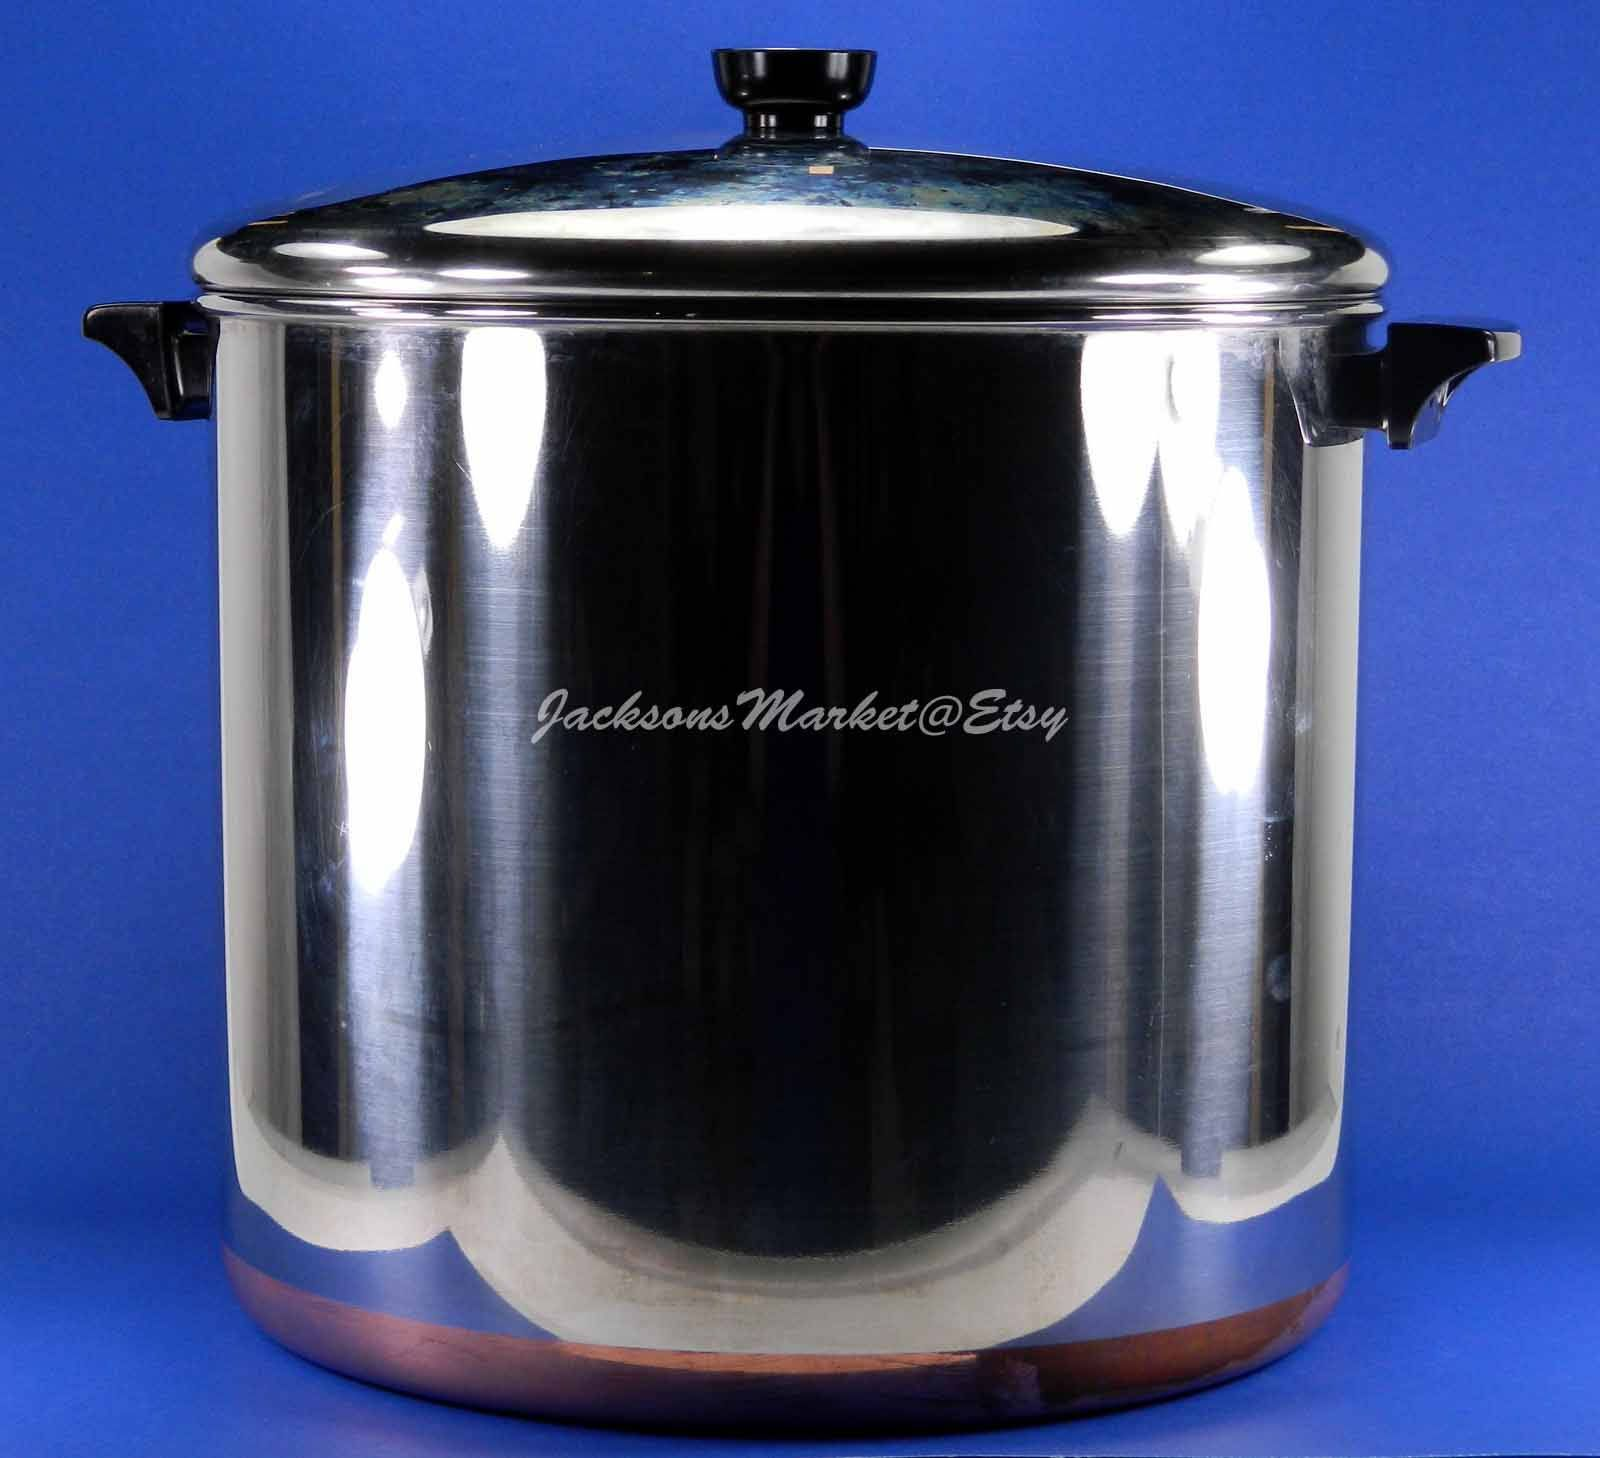 Revere Ware 20 Qt Super Pot Stockpot Copper Clad Stainless Steel